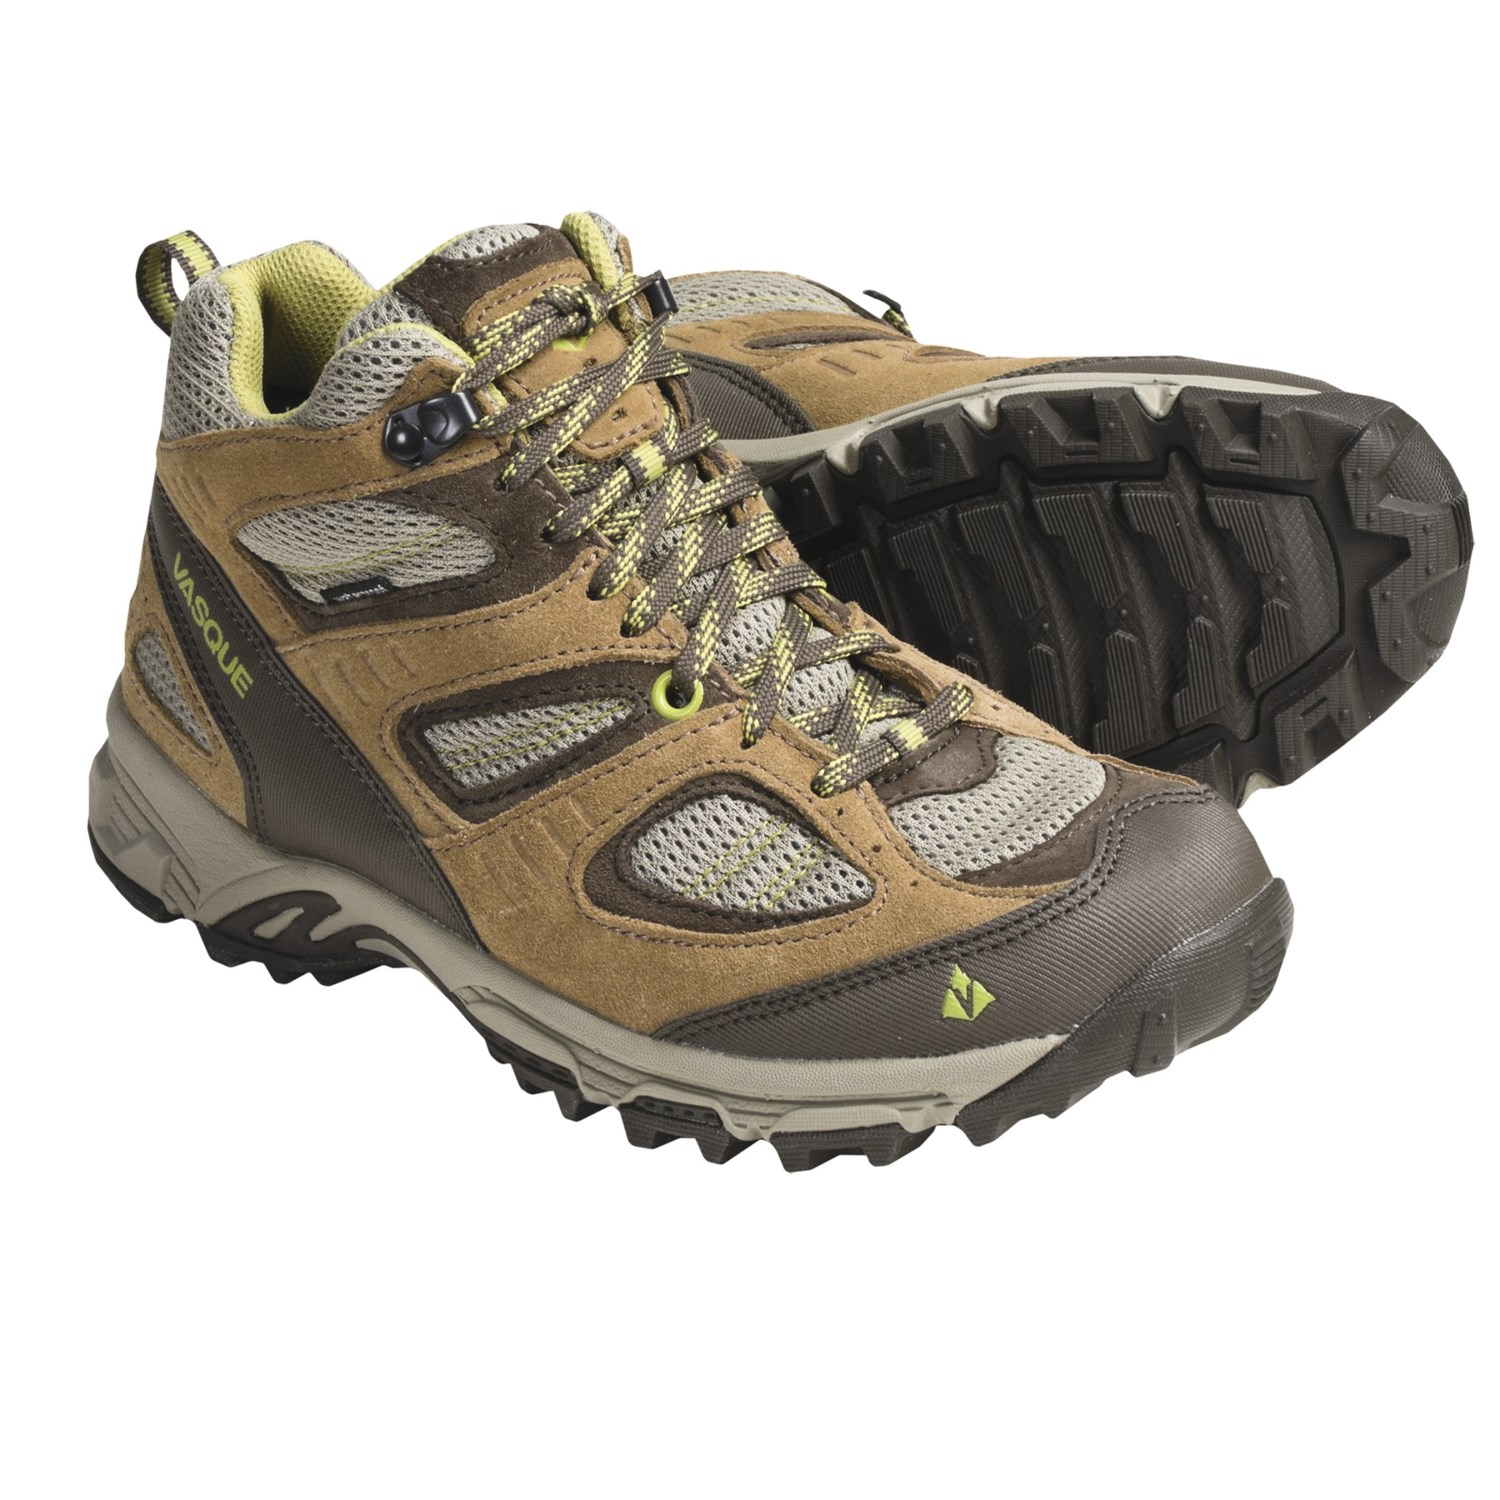 vasque opportunist mid hiking boots waterproof for